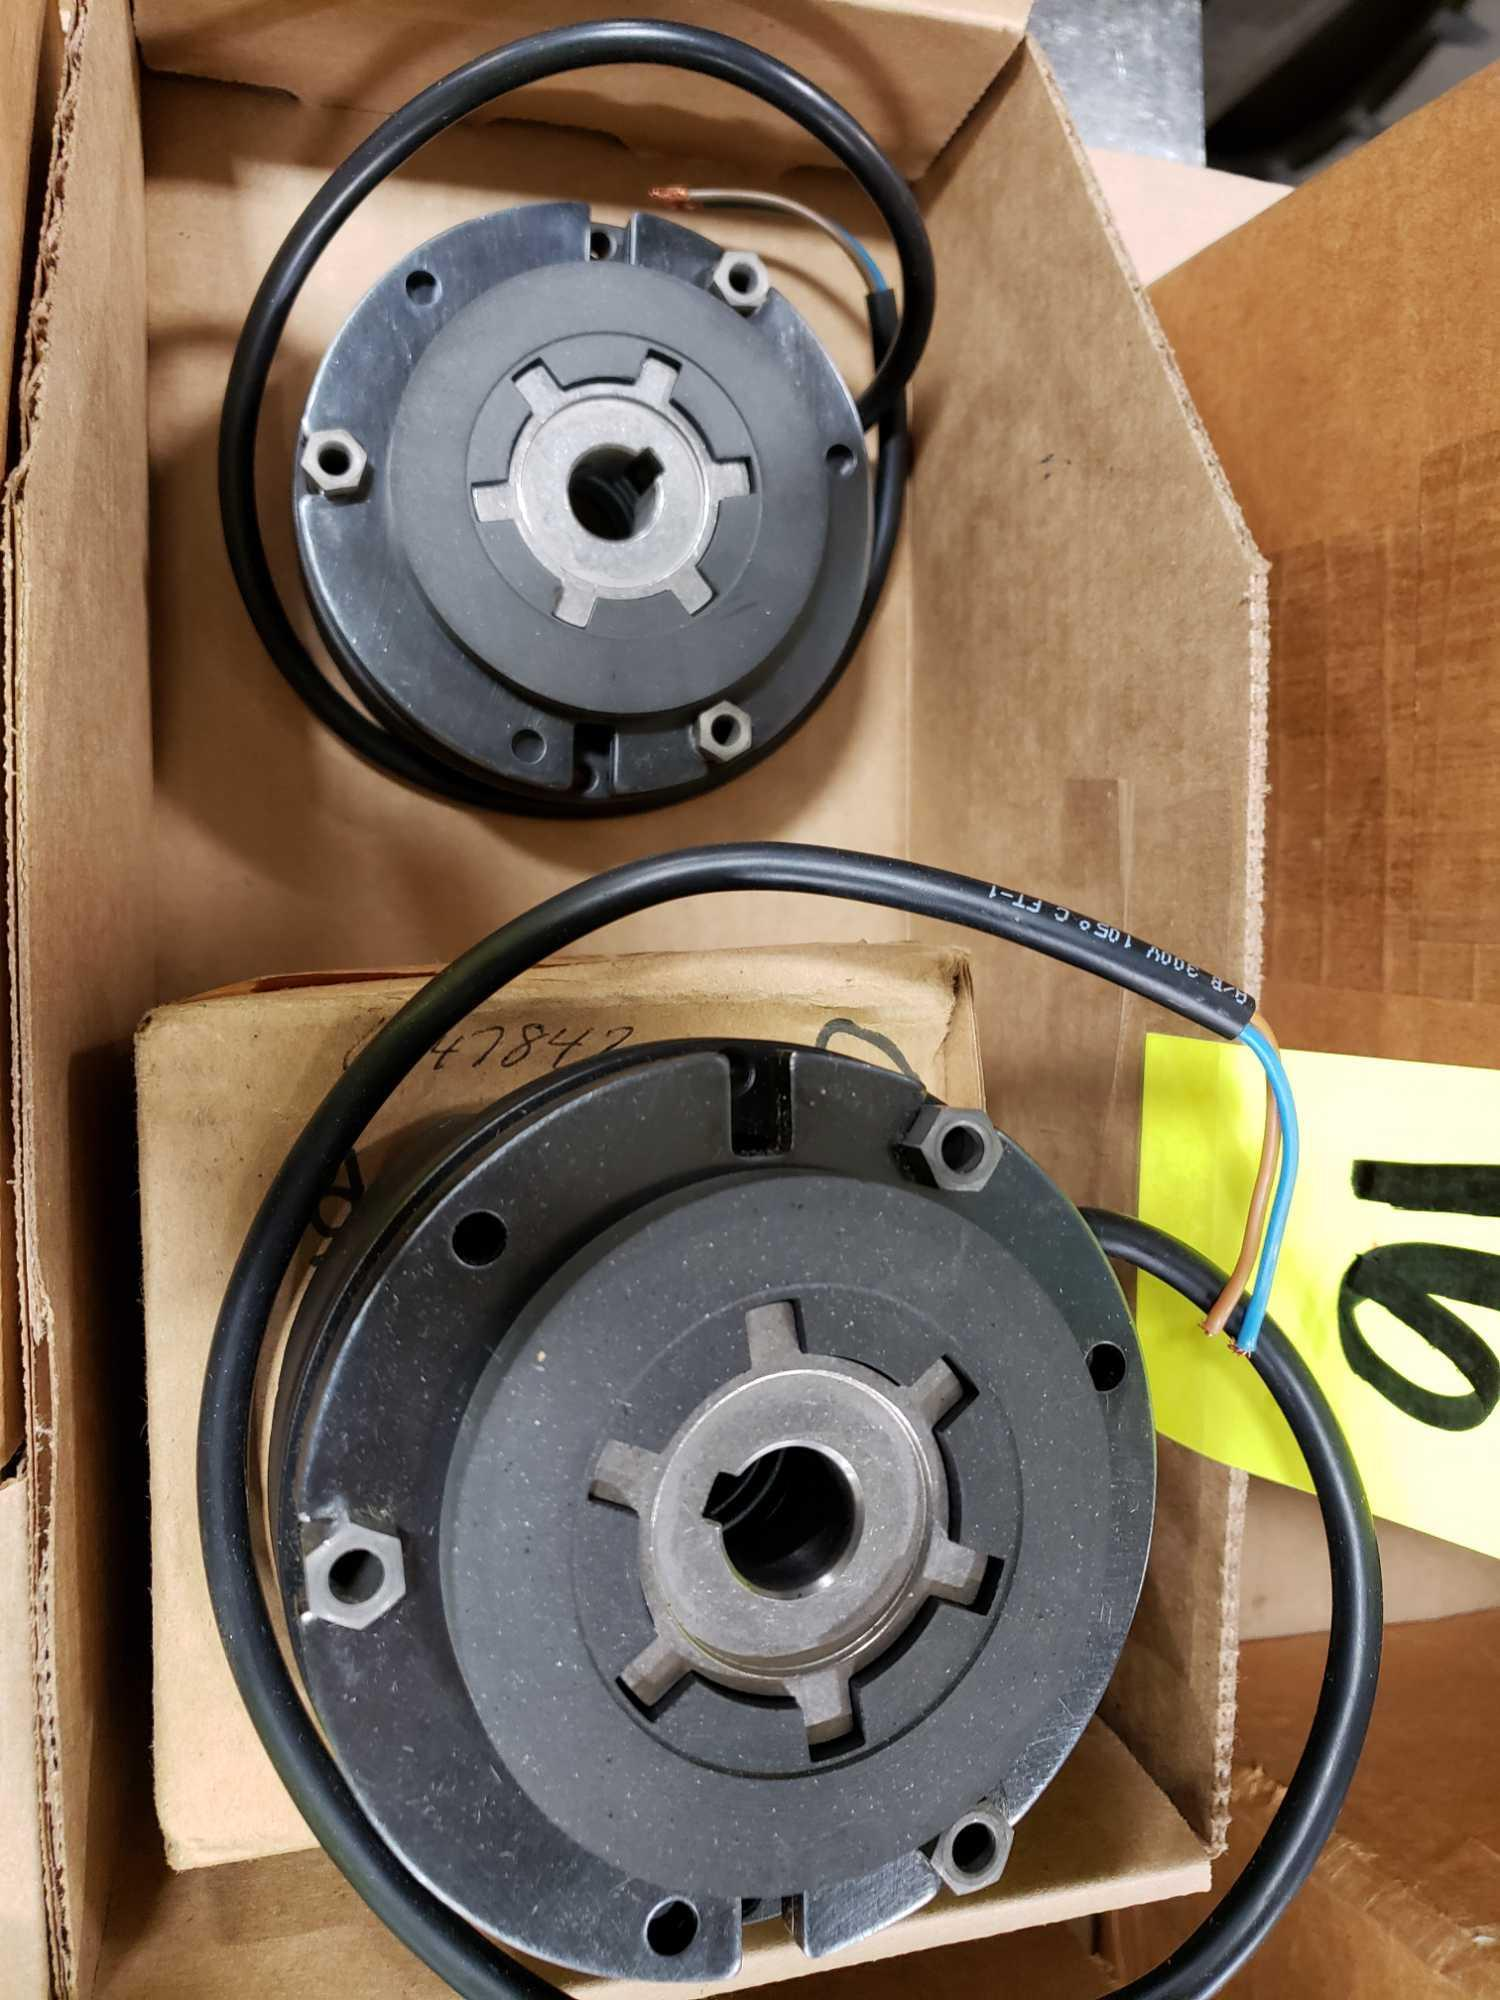 Qty 2 - Clutch brakes as pictured. New. - Image 3 of 3